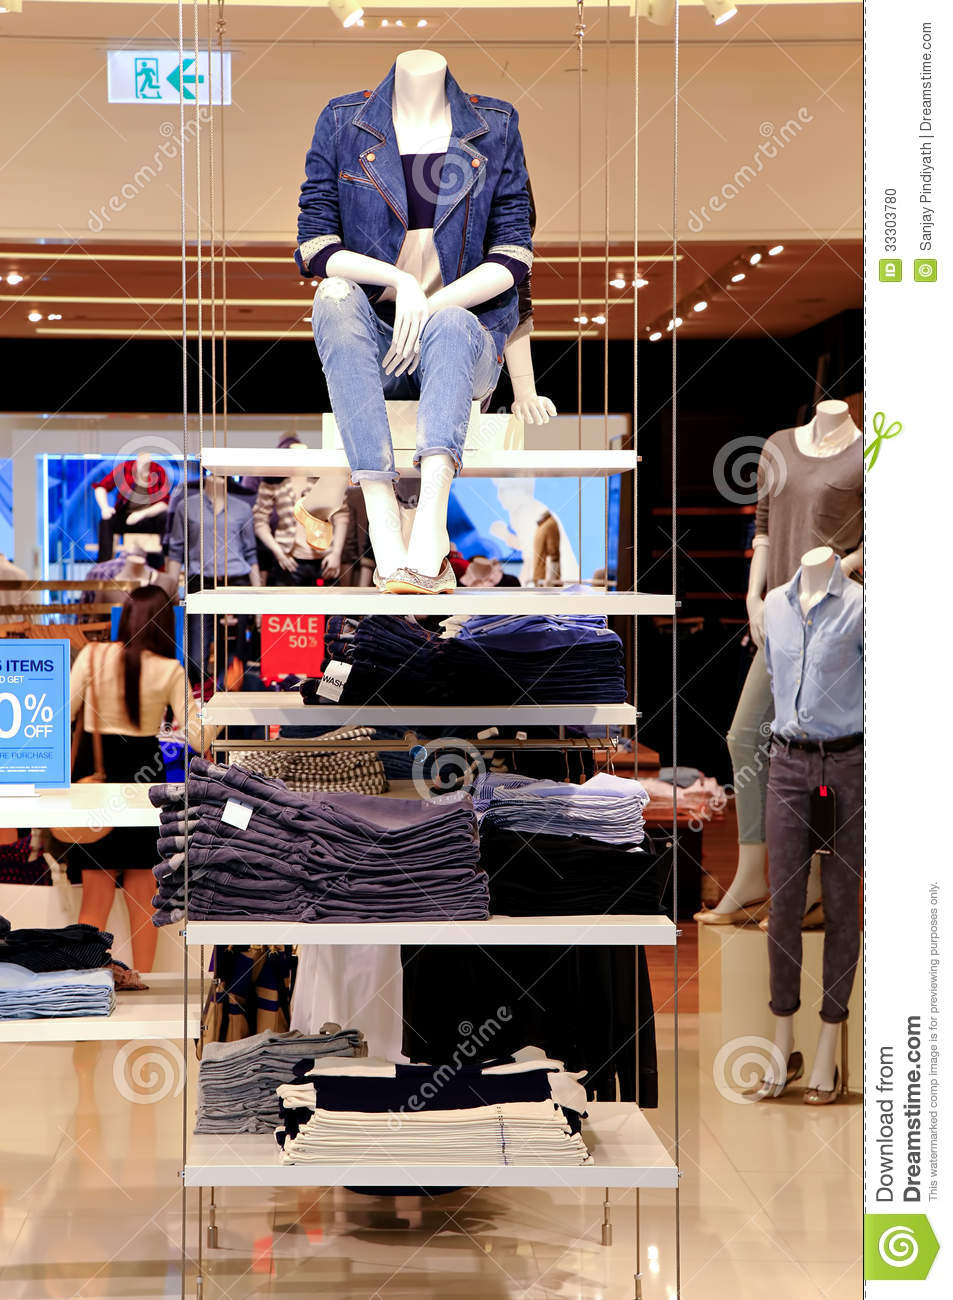 Ladies Clothing Store Stock Photo Image 33303780